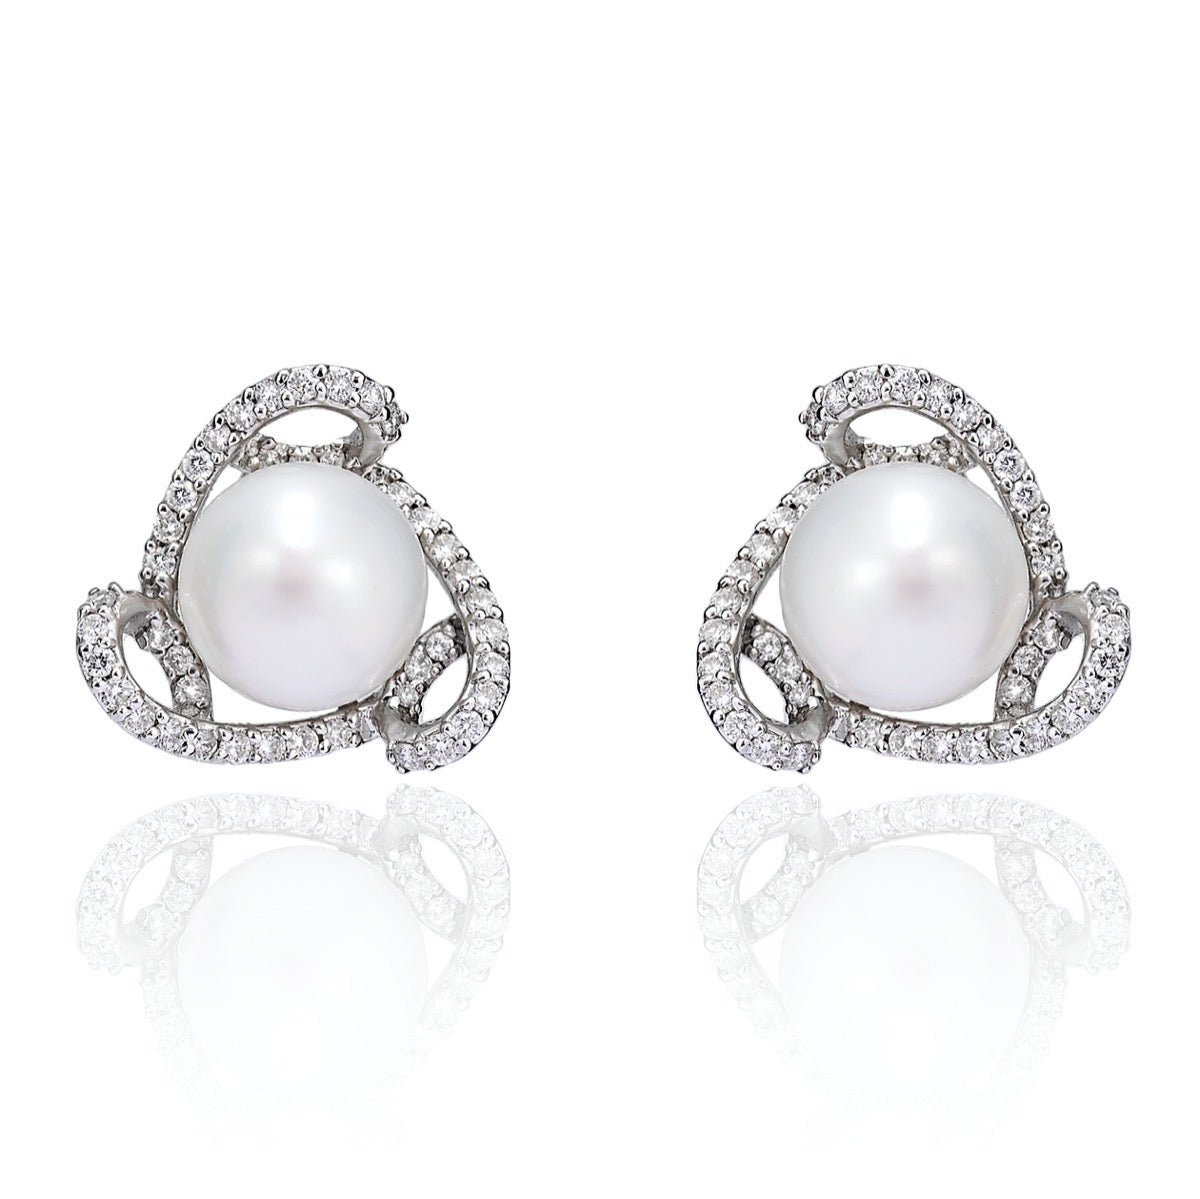 Pearl Stud Earrings with Diamond Swirl